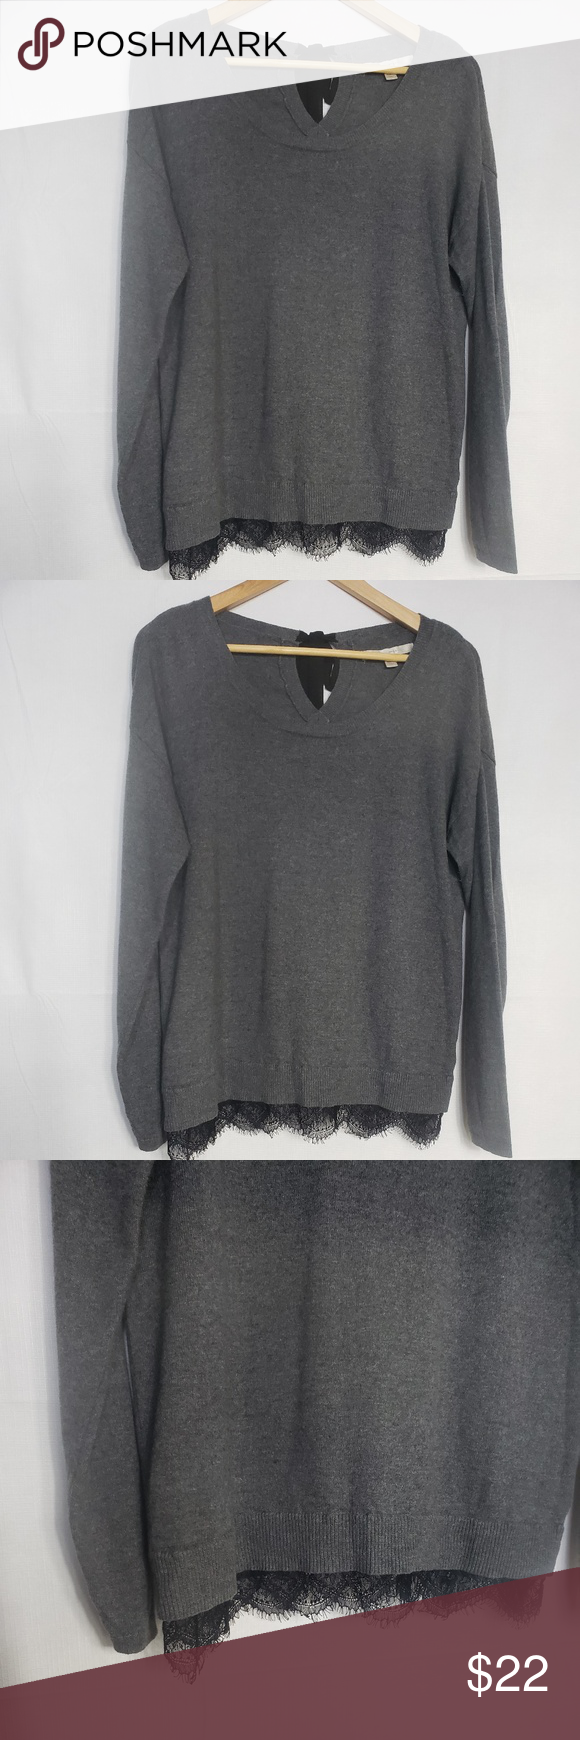 Lauren Conrad Grey Long Sleeved Sweater Size M Lauren Conrad Grey Long Sleeved Sweater Light Knit  Black Laced Scalloped Hem Trim Scoop Neckline Bow Tie Closure Cotton/Rabbit Hair Blend  Length 26 Inches Long Bust 20 Inches Measured Across Garment Laying Flat  Sleeve 25 Inches Measured From Shoulder to Cuff Excellent Pre-Loved Condition LC Lauren Conrad Sweaters Crew & Scoop Necks #laurenconradhair